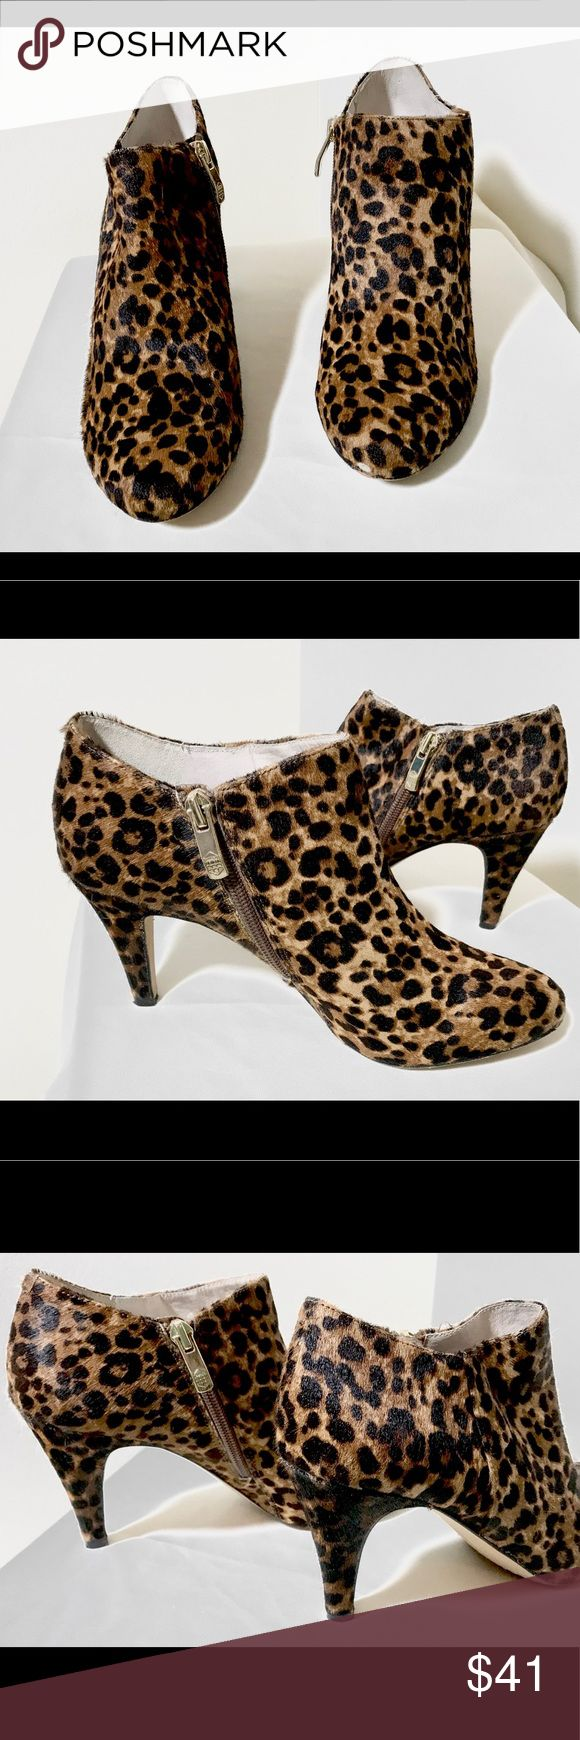 Vince Camuto Vive Leopard Print Pony Hair boot 7.5 Vince Camuto Vive Leopard Print Pony Hair Size 7.5 Ankle Bootie with gold side zipper Two by Vince Camuto Shoes Ankle Boots & Booties